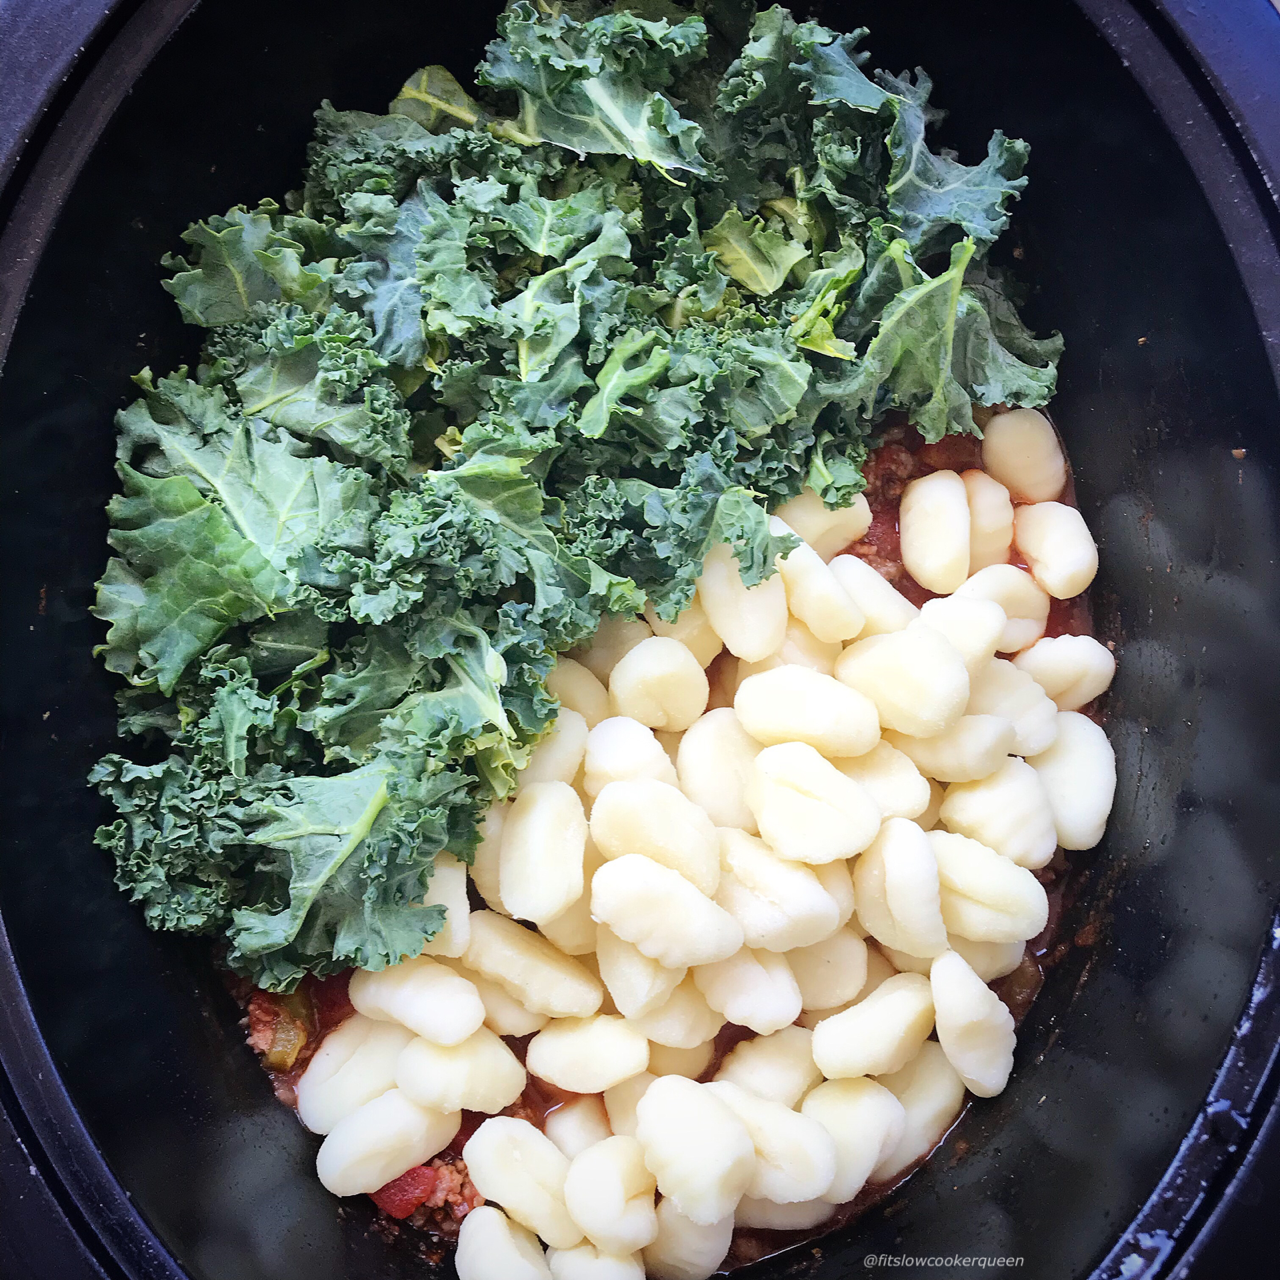 Gnocchi in the slow cooker? Of course! Gnocchi, sausage, and kale cook in a tomato sauce in this simple and hearty slow cooker recipe. Slow cooker comfort food at it's finest.